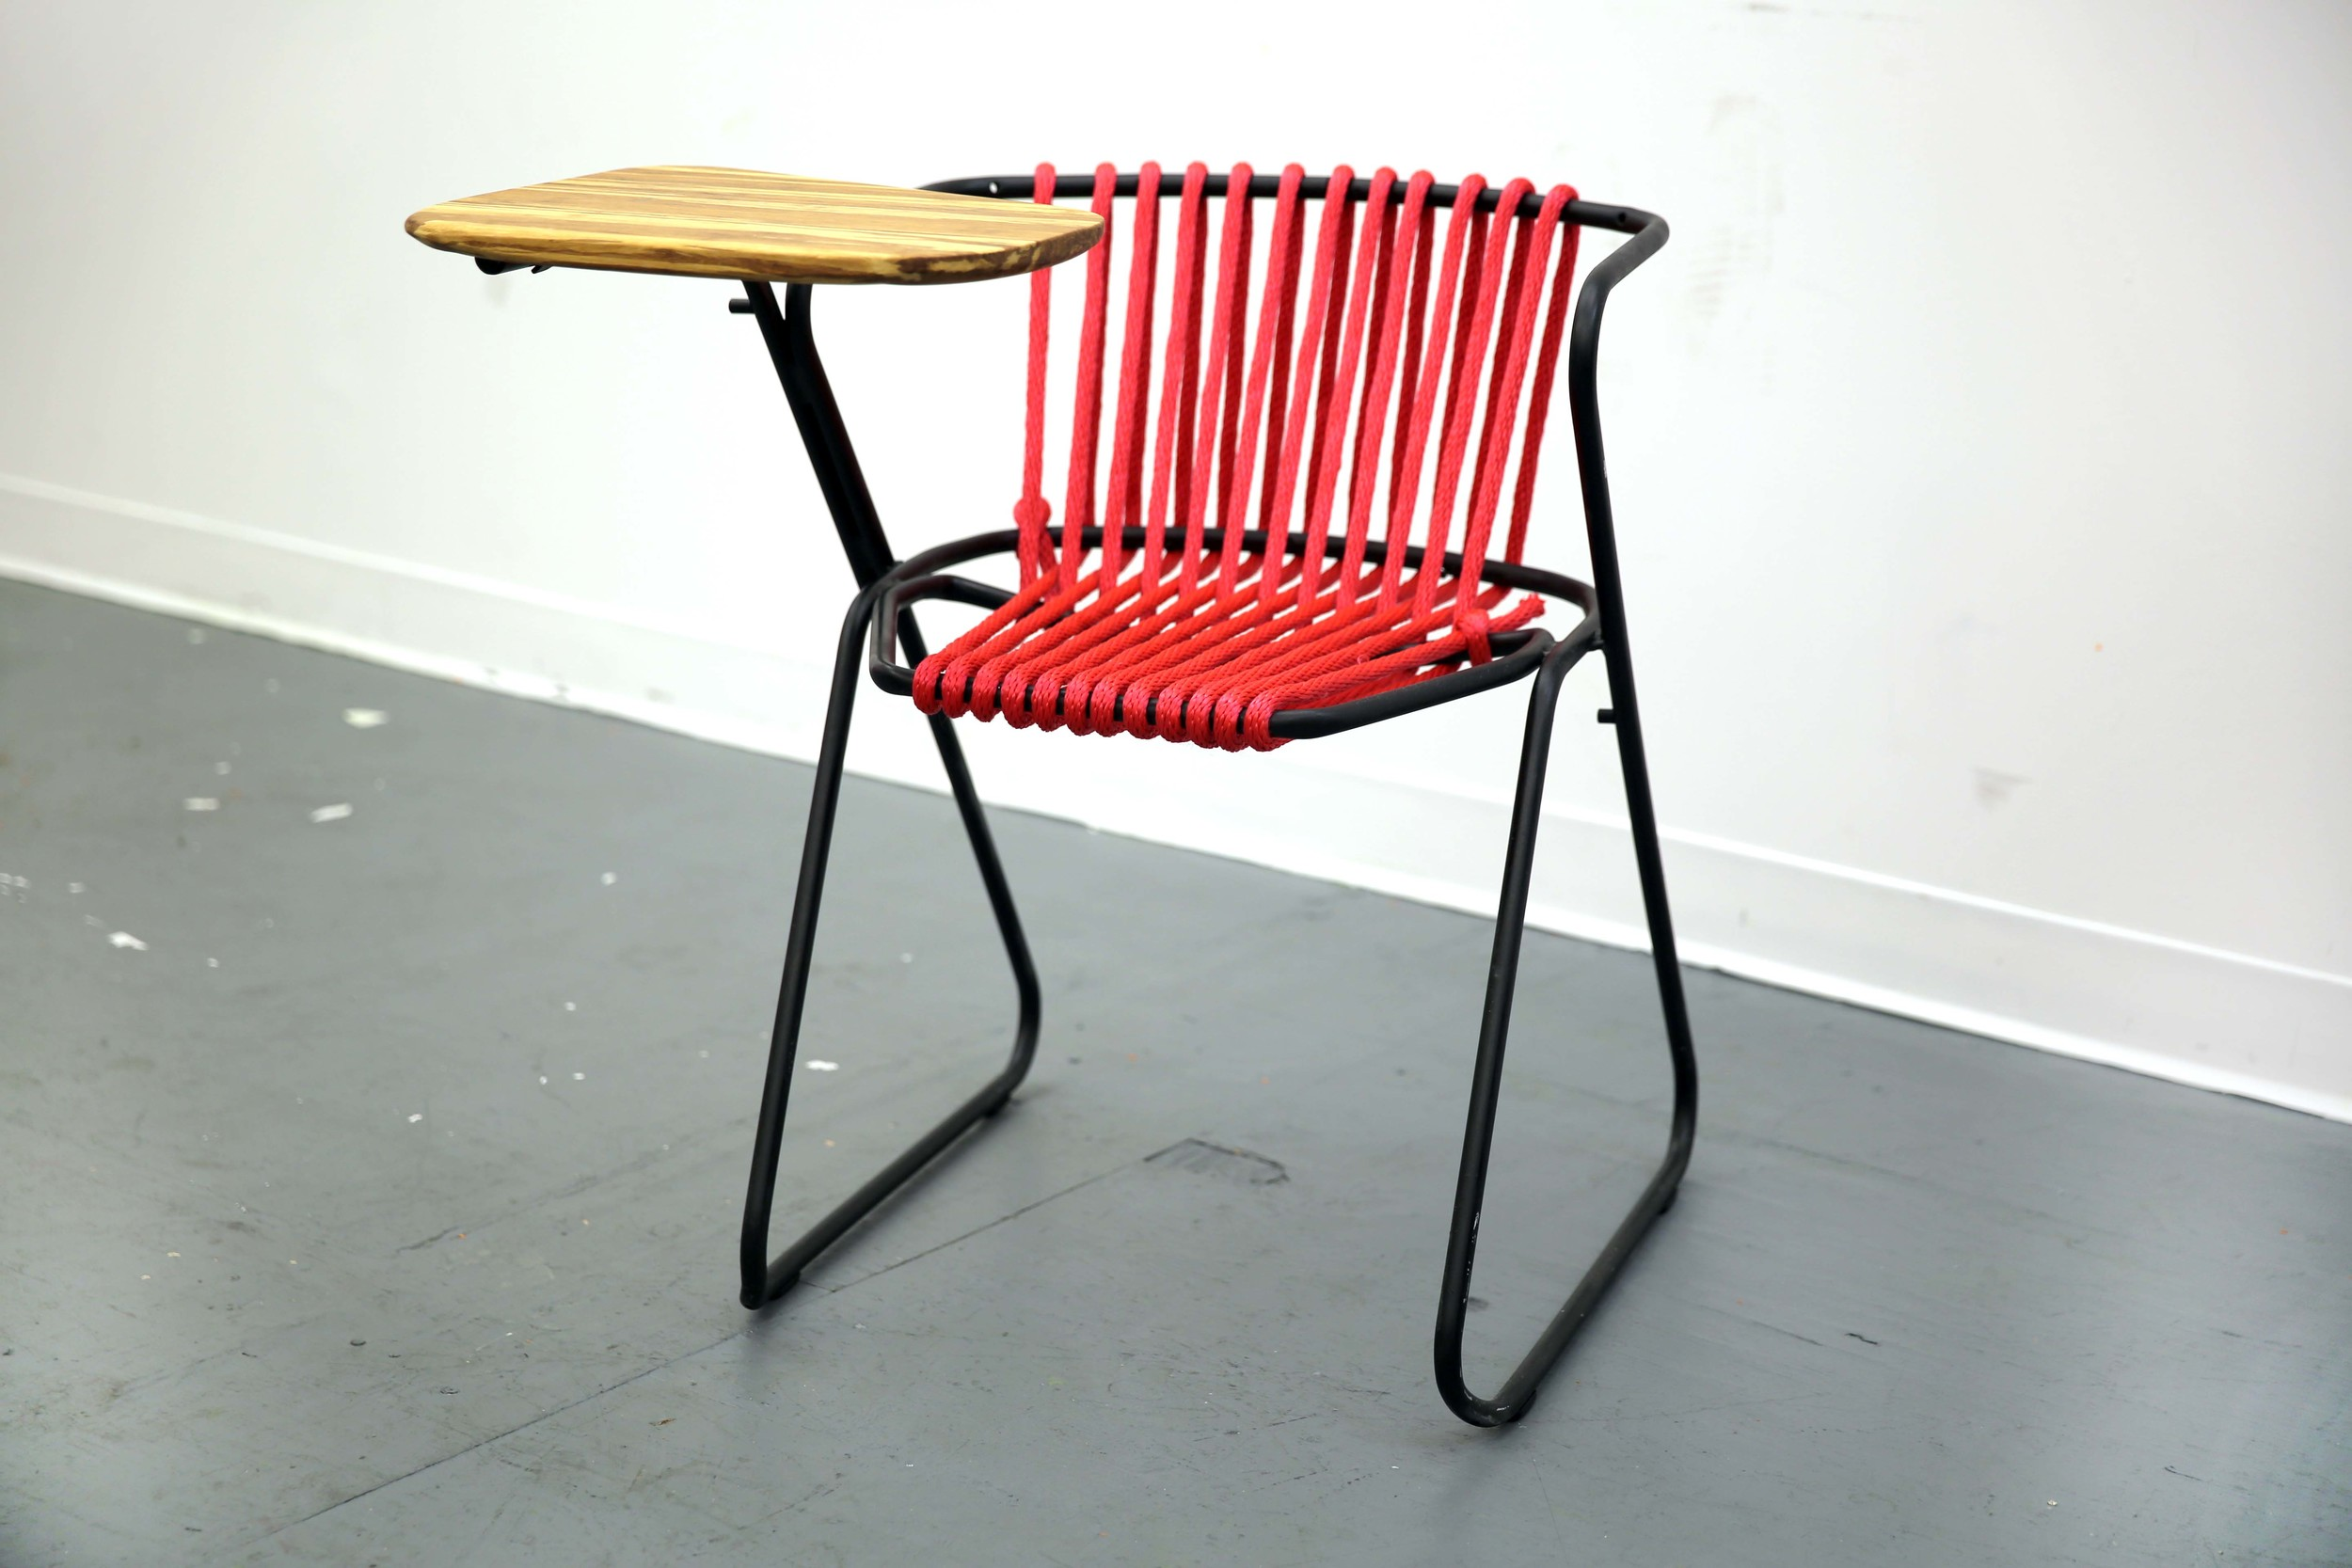 Table Chair, 2015